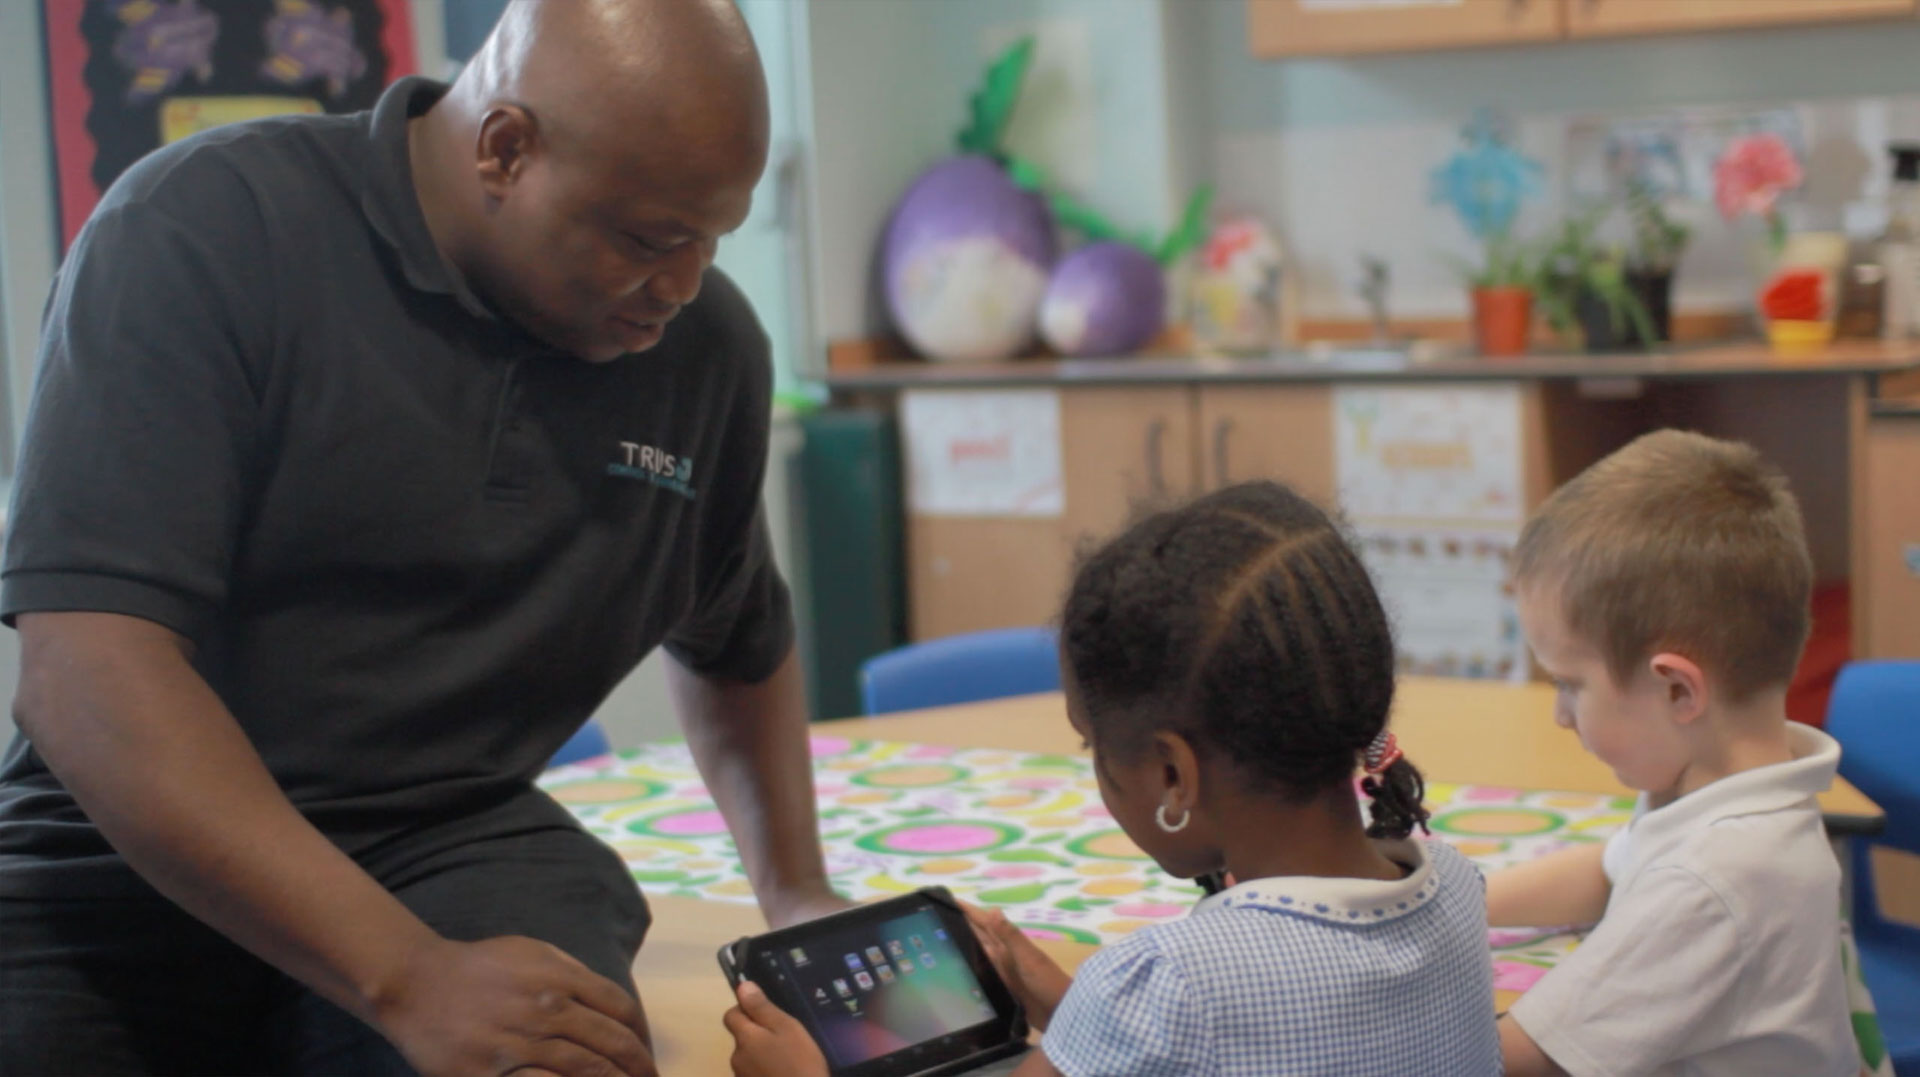 SUPPORTING TEACHING AND LEARNING THROUGH TECHNOLOGY